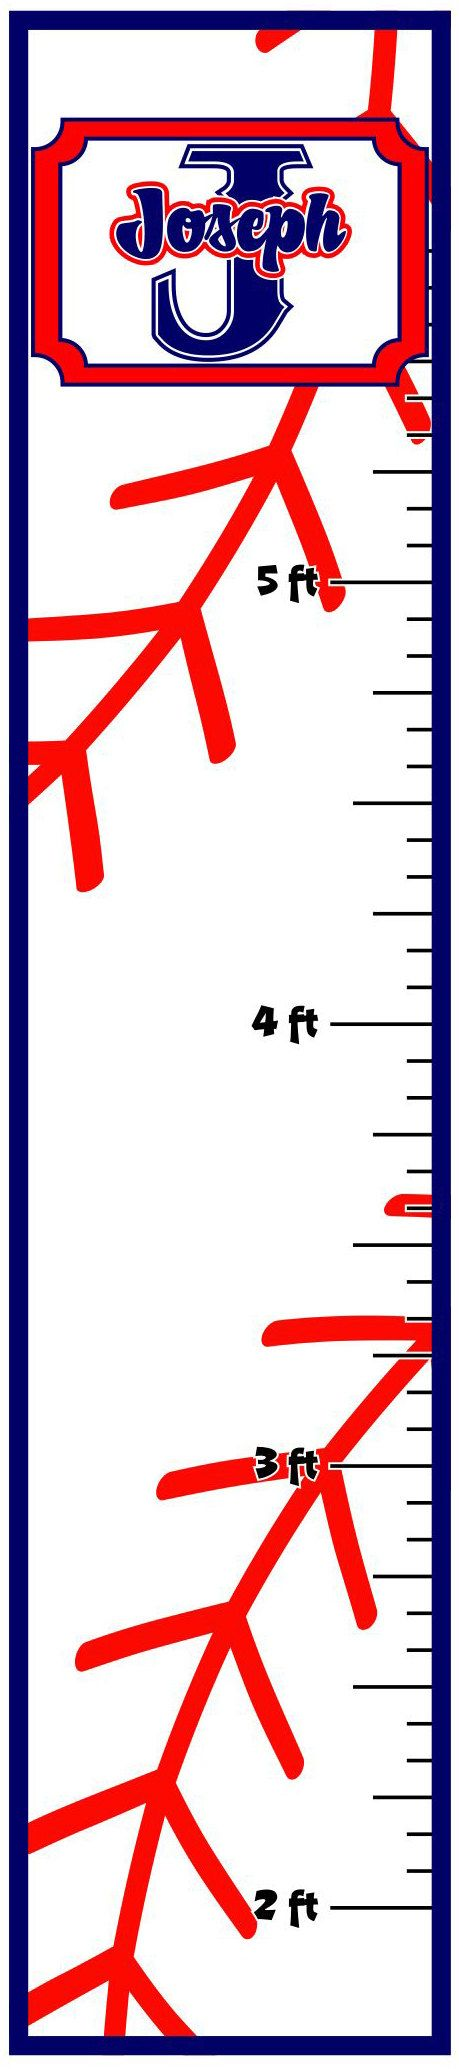 51 best growth charts images on pinterest growth ruler bedrooms personalized growth chart baseball theme by velocelenza on etsy 3999 nvjuhfo Images